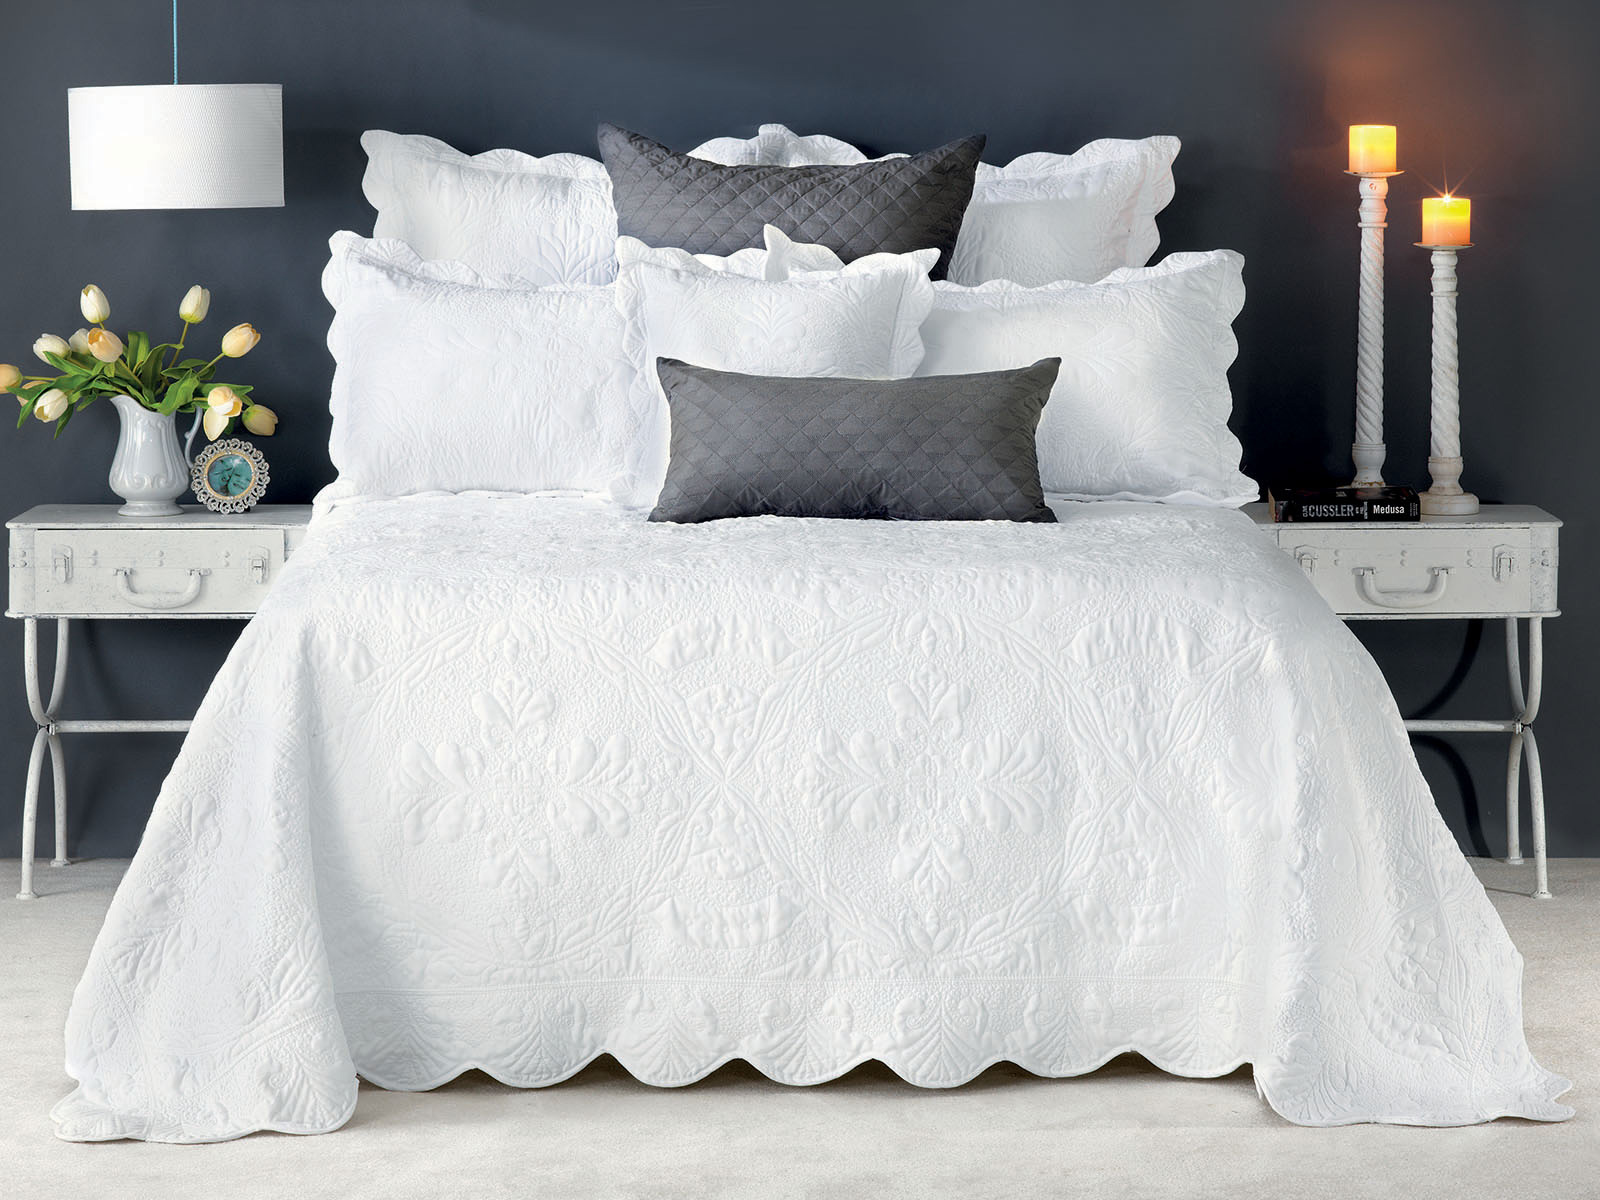 Buy Bed Linen Amp Accessories Online Bedding Shop Australia